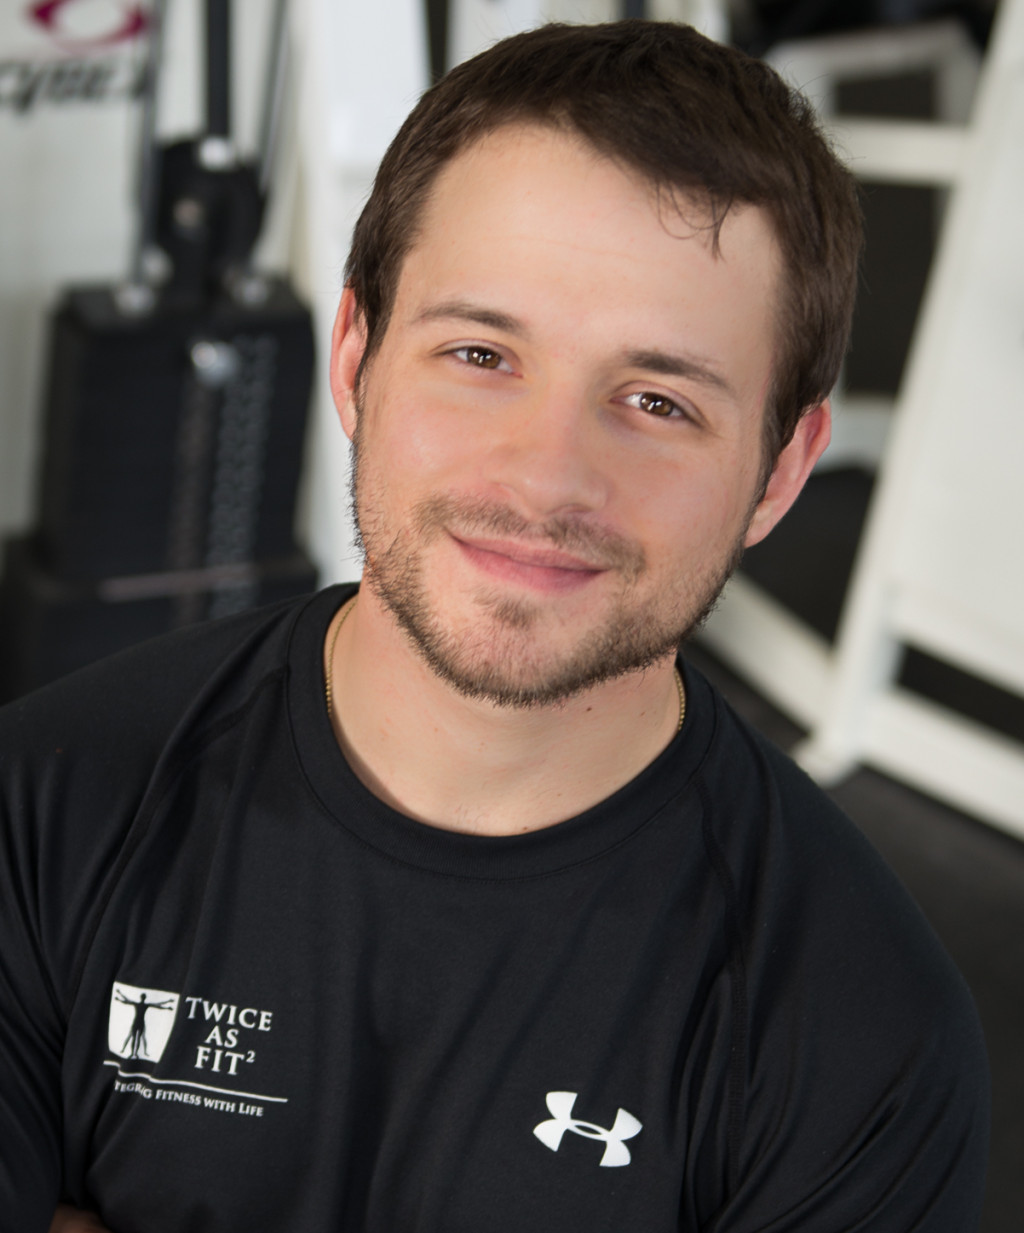 Personal Trainer Northfield, Illinois - Alexander Courtney